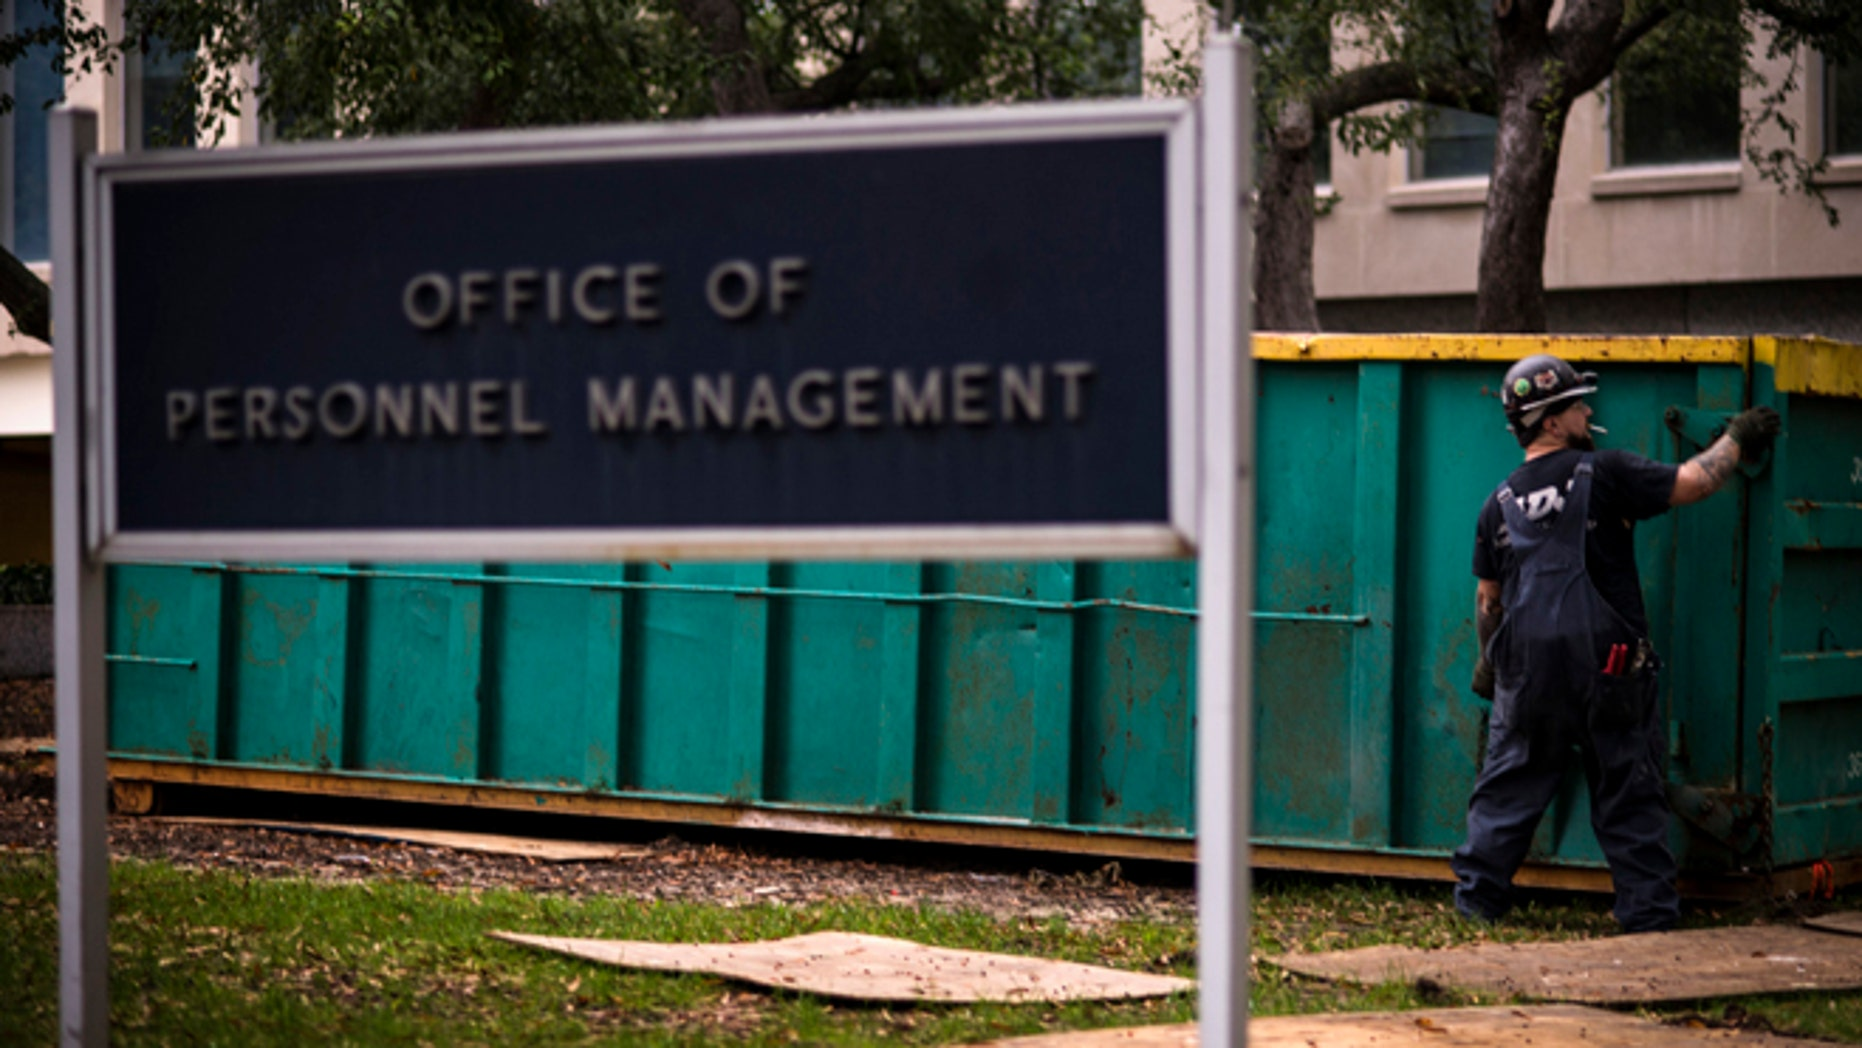 In this Thursday, Oct. 17, 2013 photo, a worker is seen at the Office of Personnel Management in Washington.